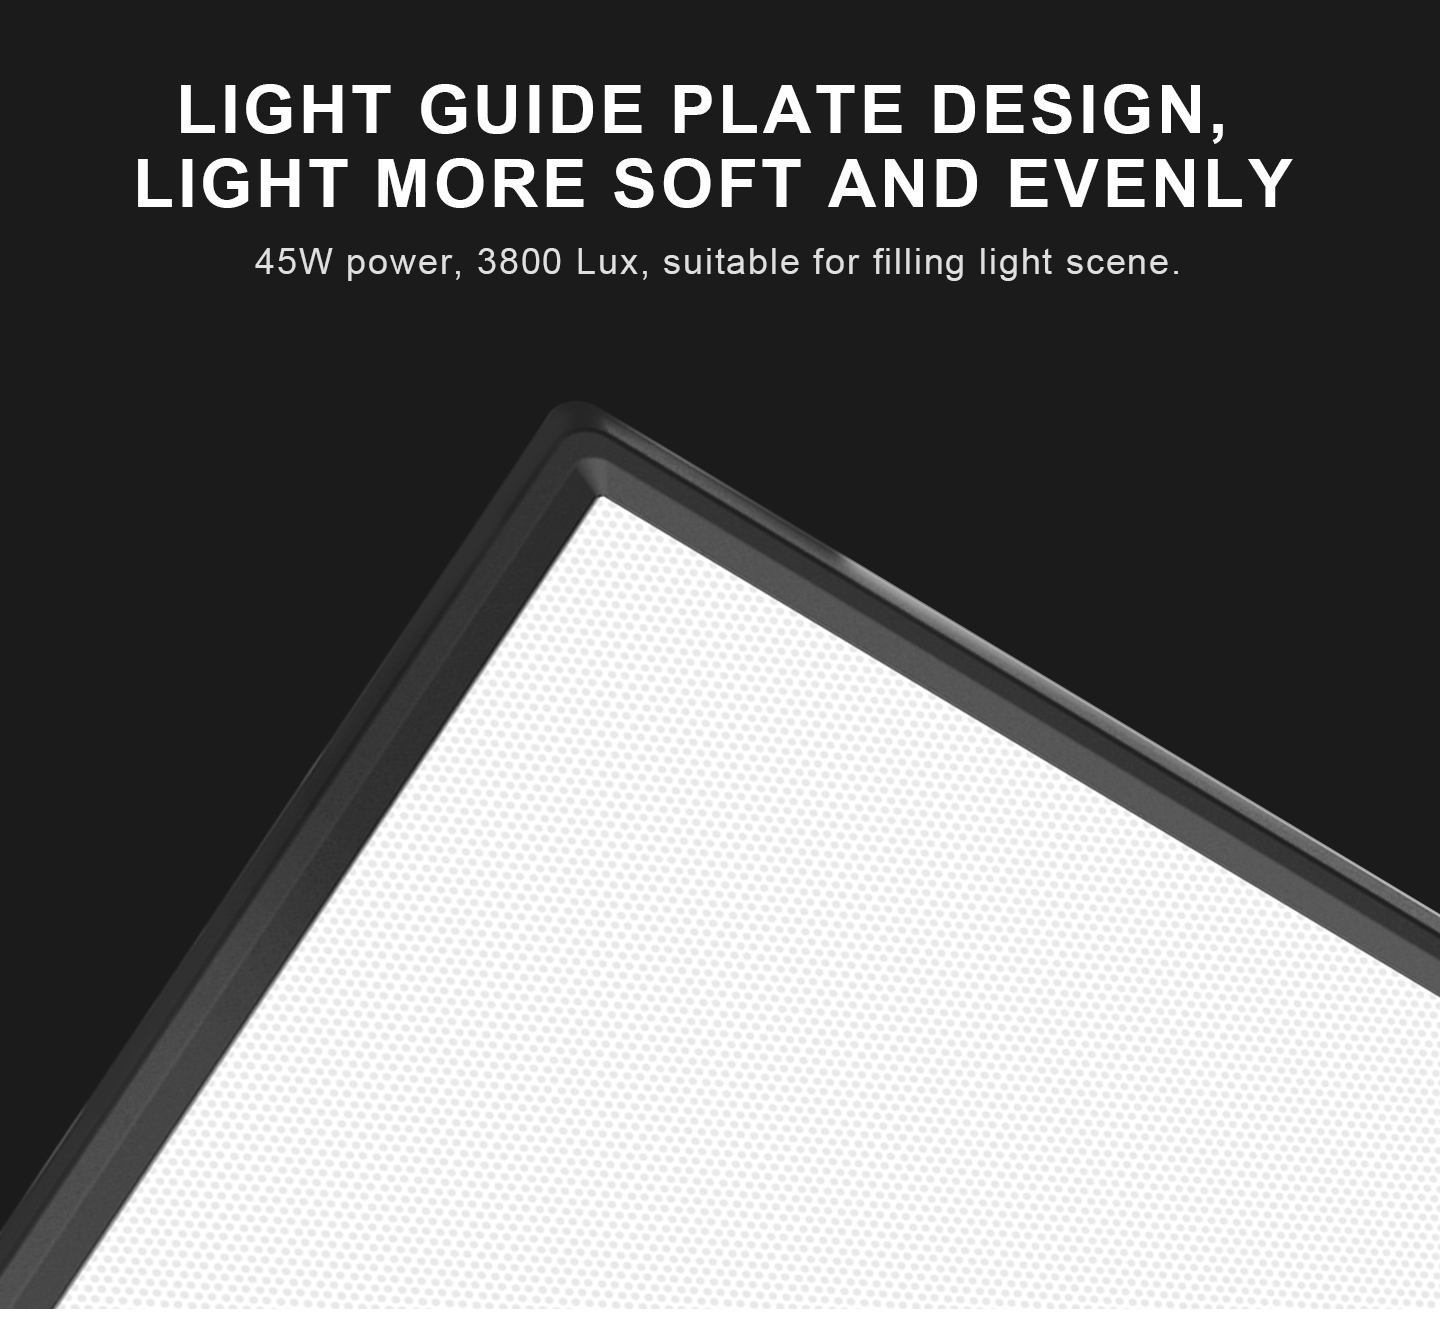 LIGHT GUIDE PLATE DESIGN, LIGHT MORE SOFT AND EVENLY